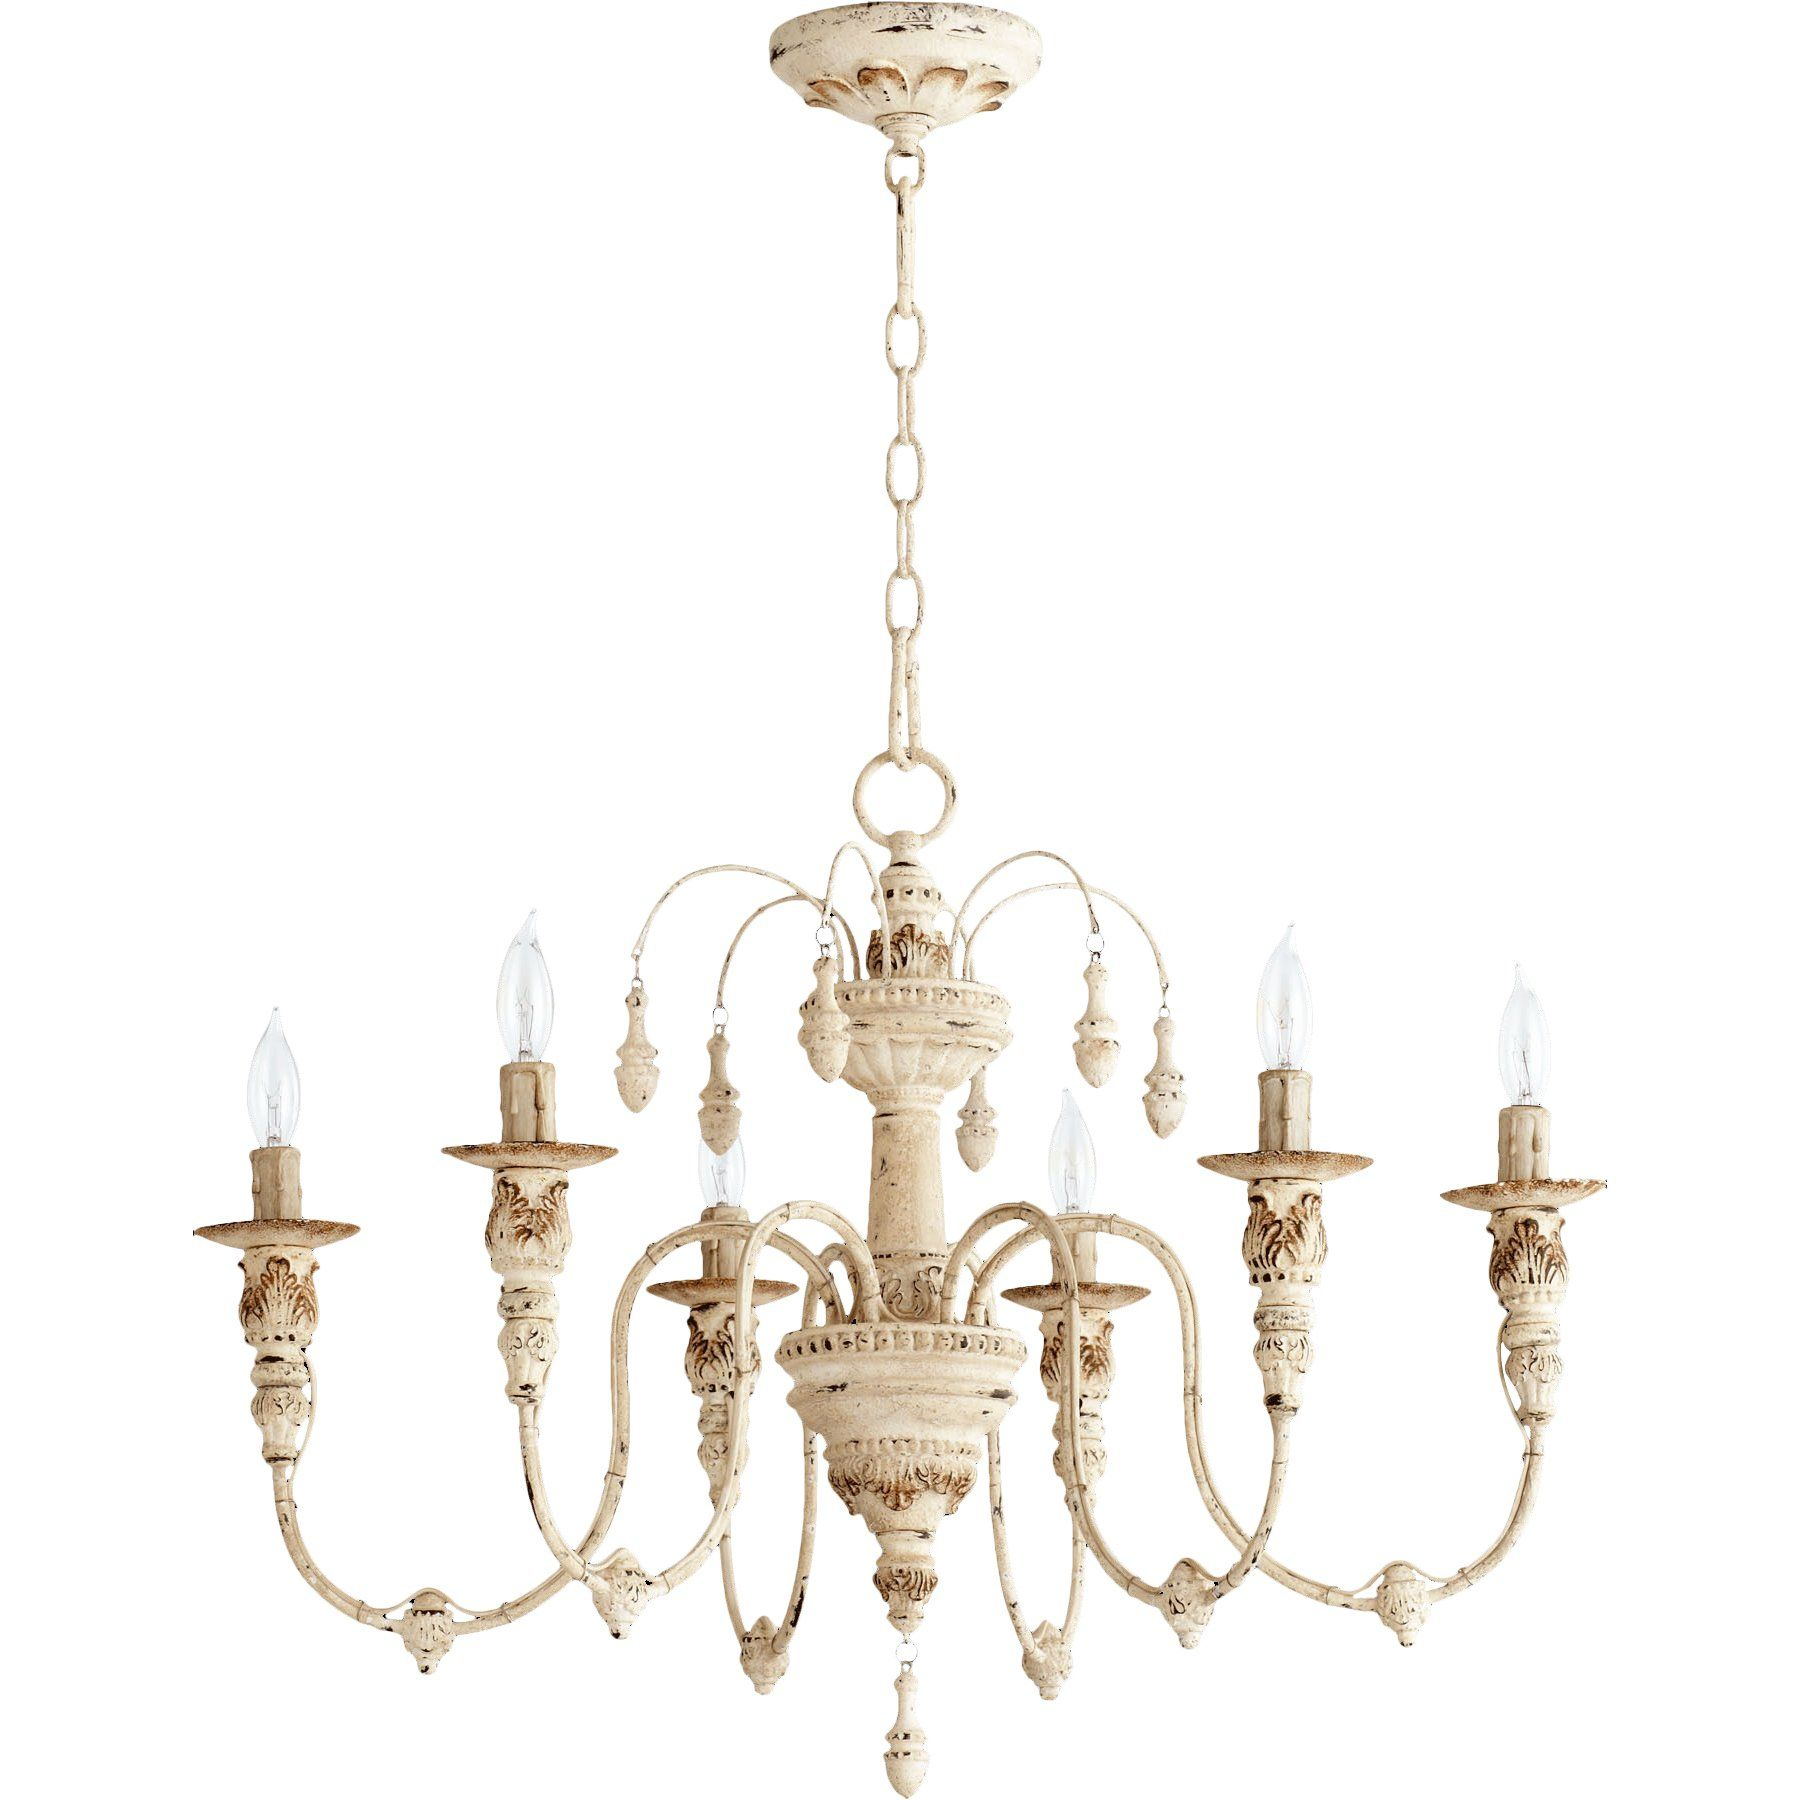 Paladino 6 light candle style chandelier for the home pinterest paladino 6 light candle style chandelier arubaitofo Choice Image